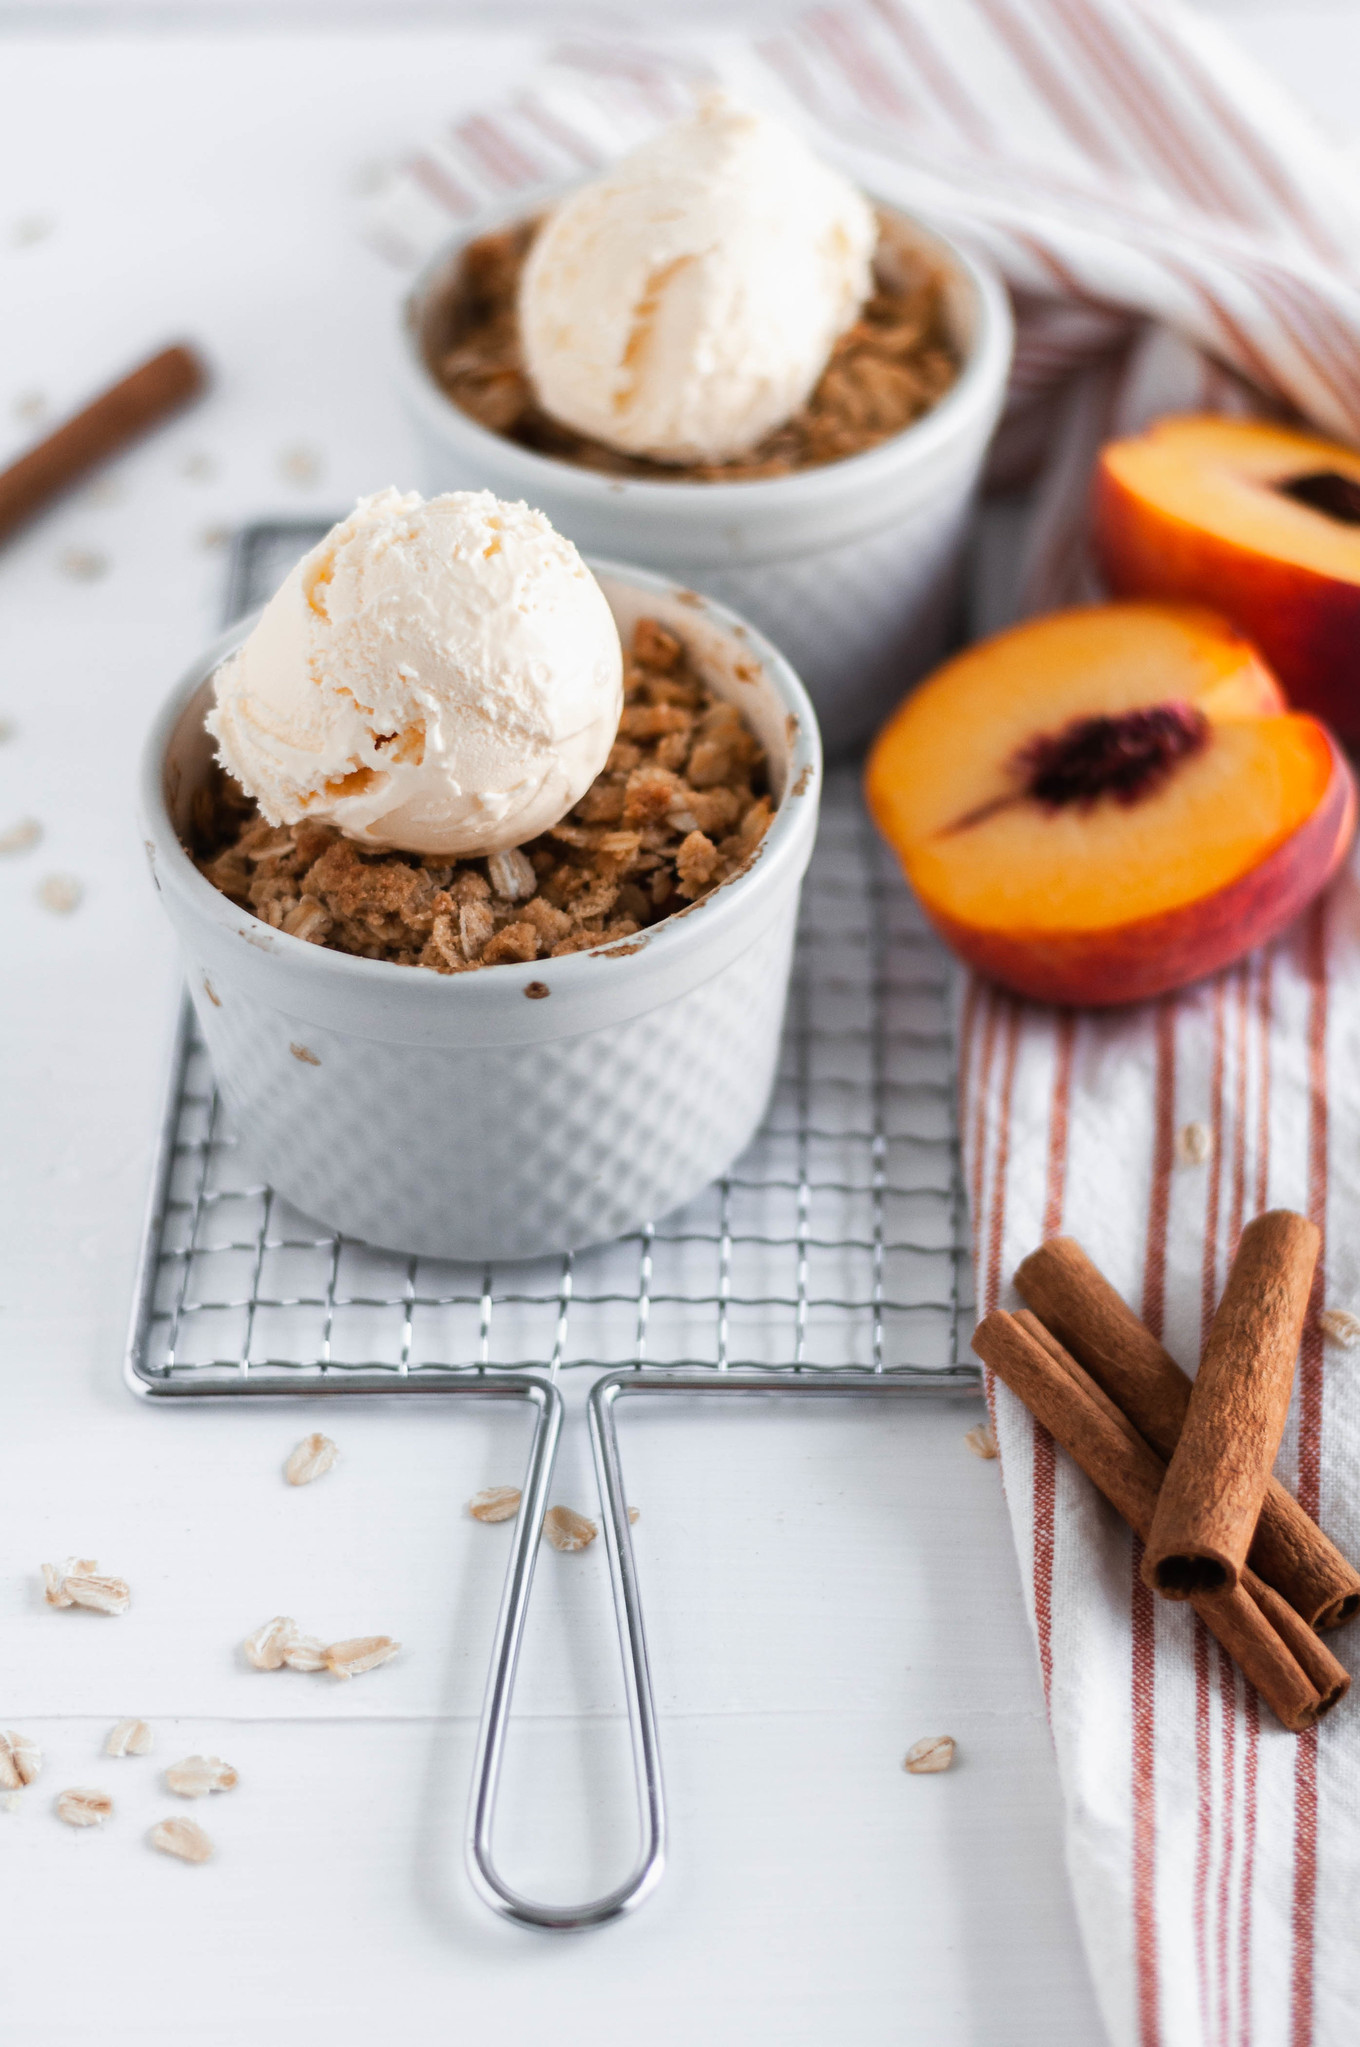 Want dessert but not tons of leftovers? Make this Small Batch Peach Crisp recipe which yields two perfect servings done in less than 45 minutes.